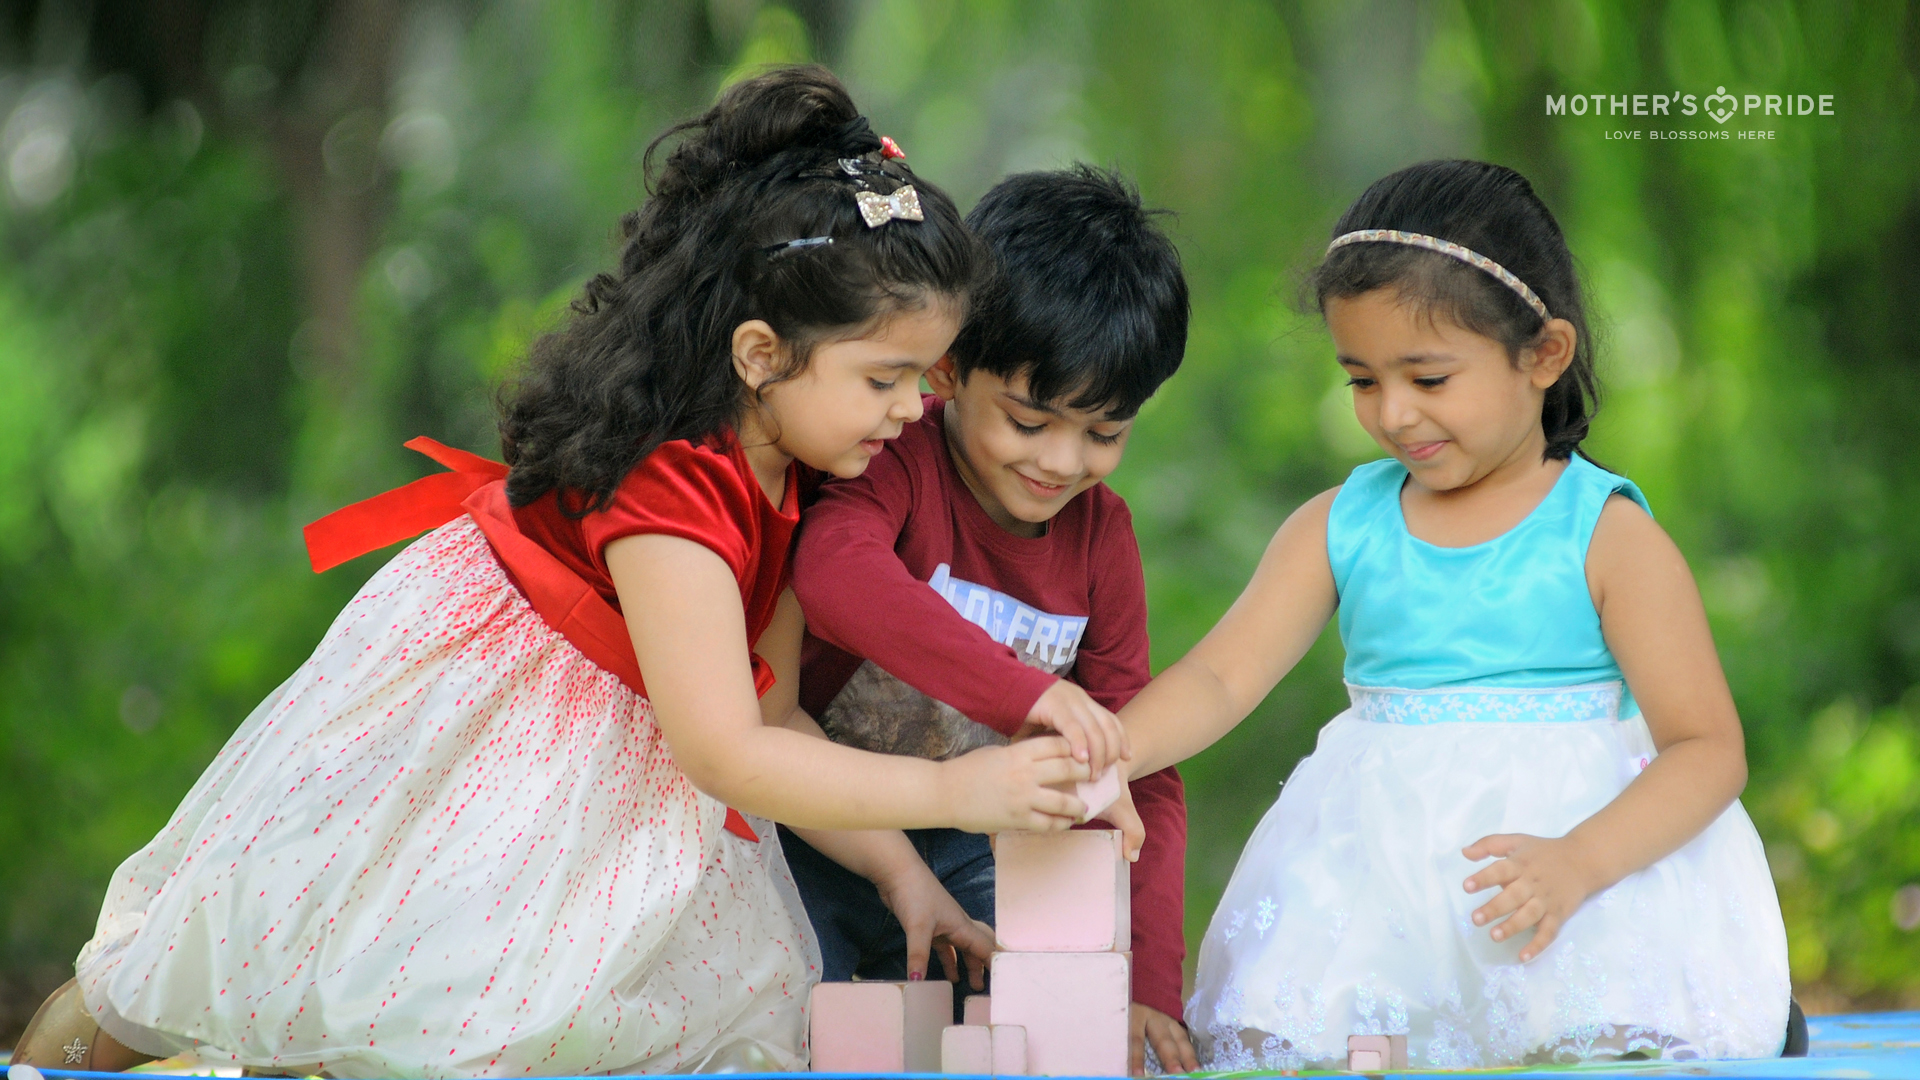 HELP YOUR CHILD DEVELOP SOCIAL SKILLS